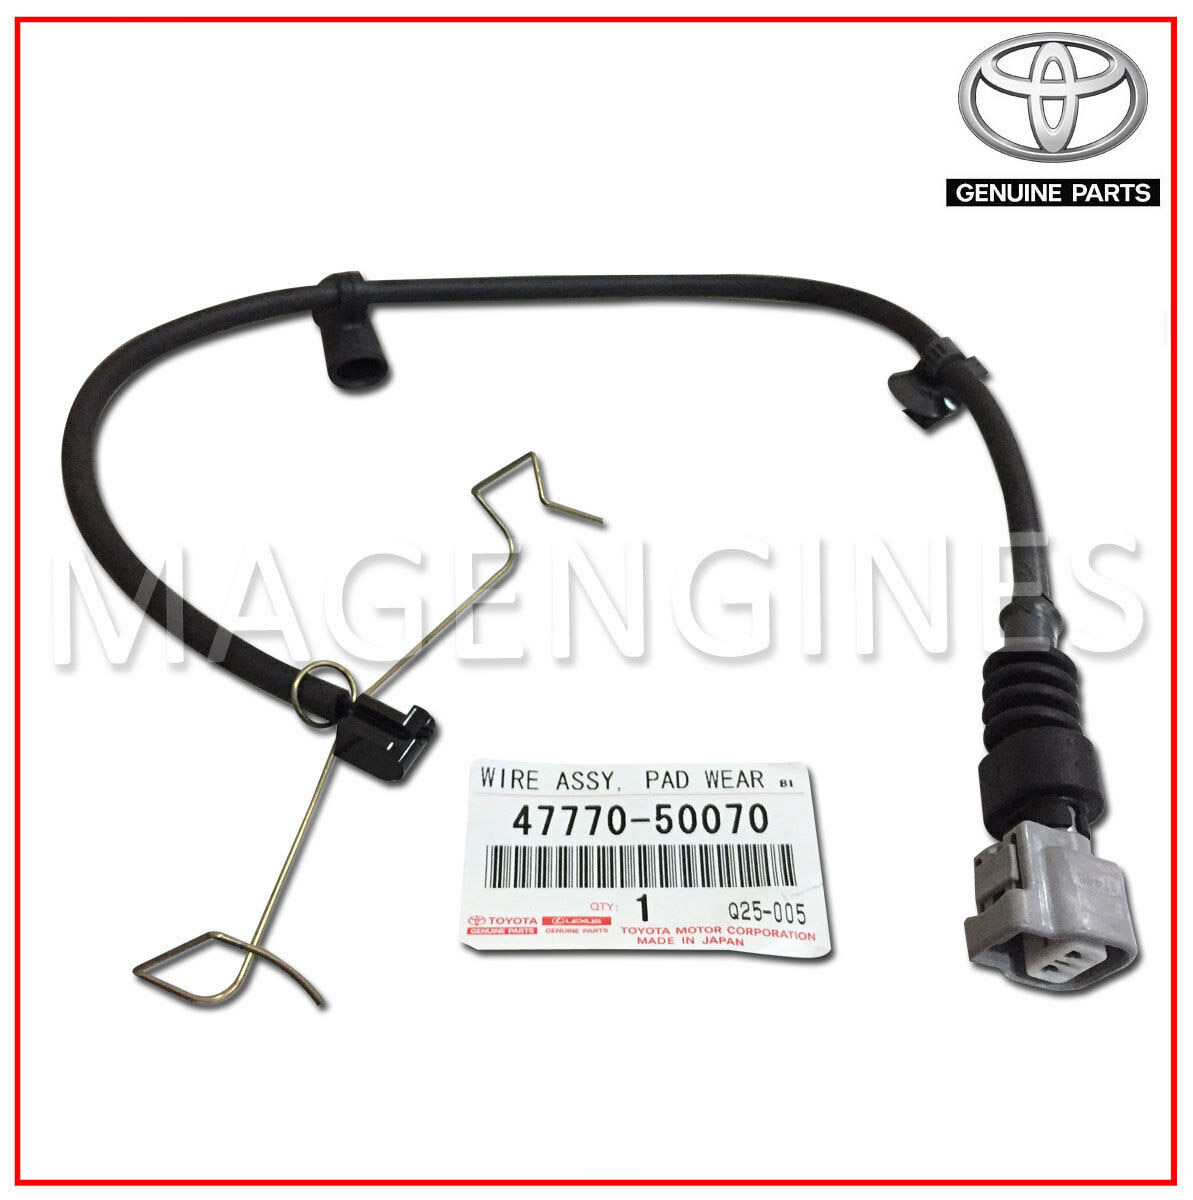 47770 50070 Toyota Genuine Wire Assy Pad Wear Indicator Front Rh 4777050070 Mag Engines